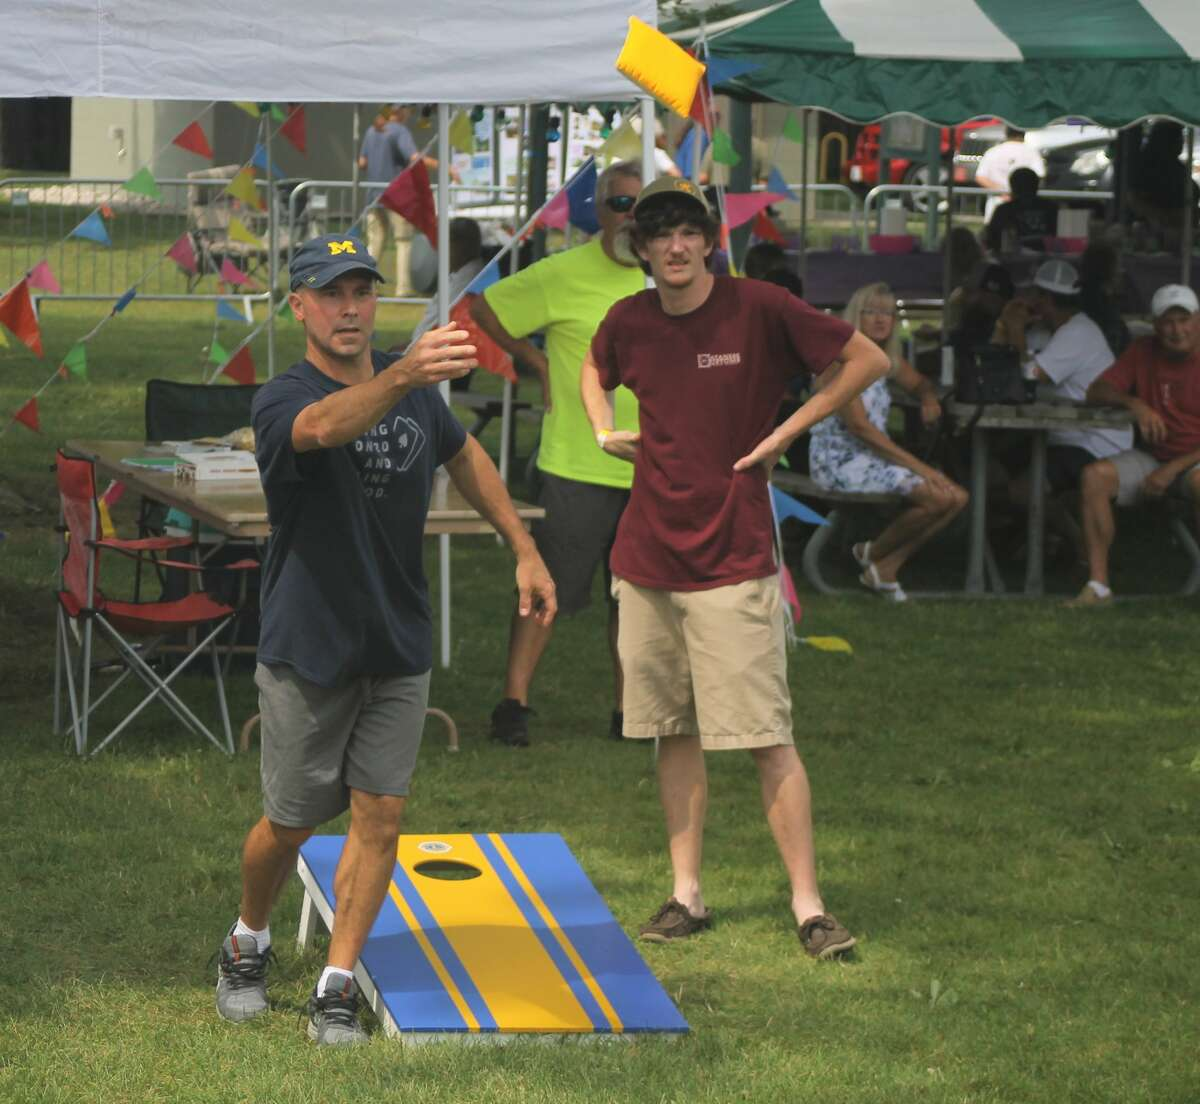 Onekama Days was in full swing over the weekend, with a car show, scavenger hunt, cornhole tournament and more to entertain residents and visitors alike.